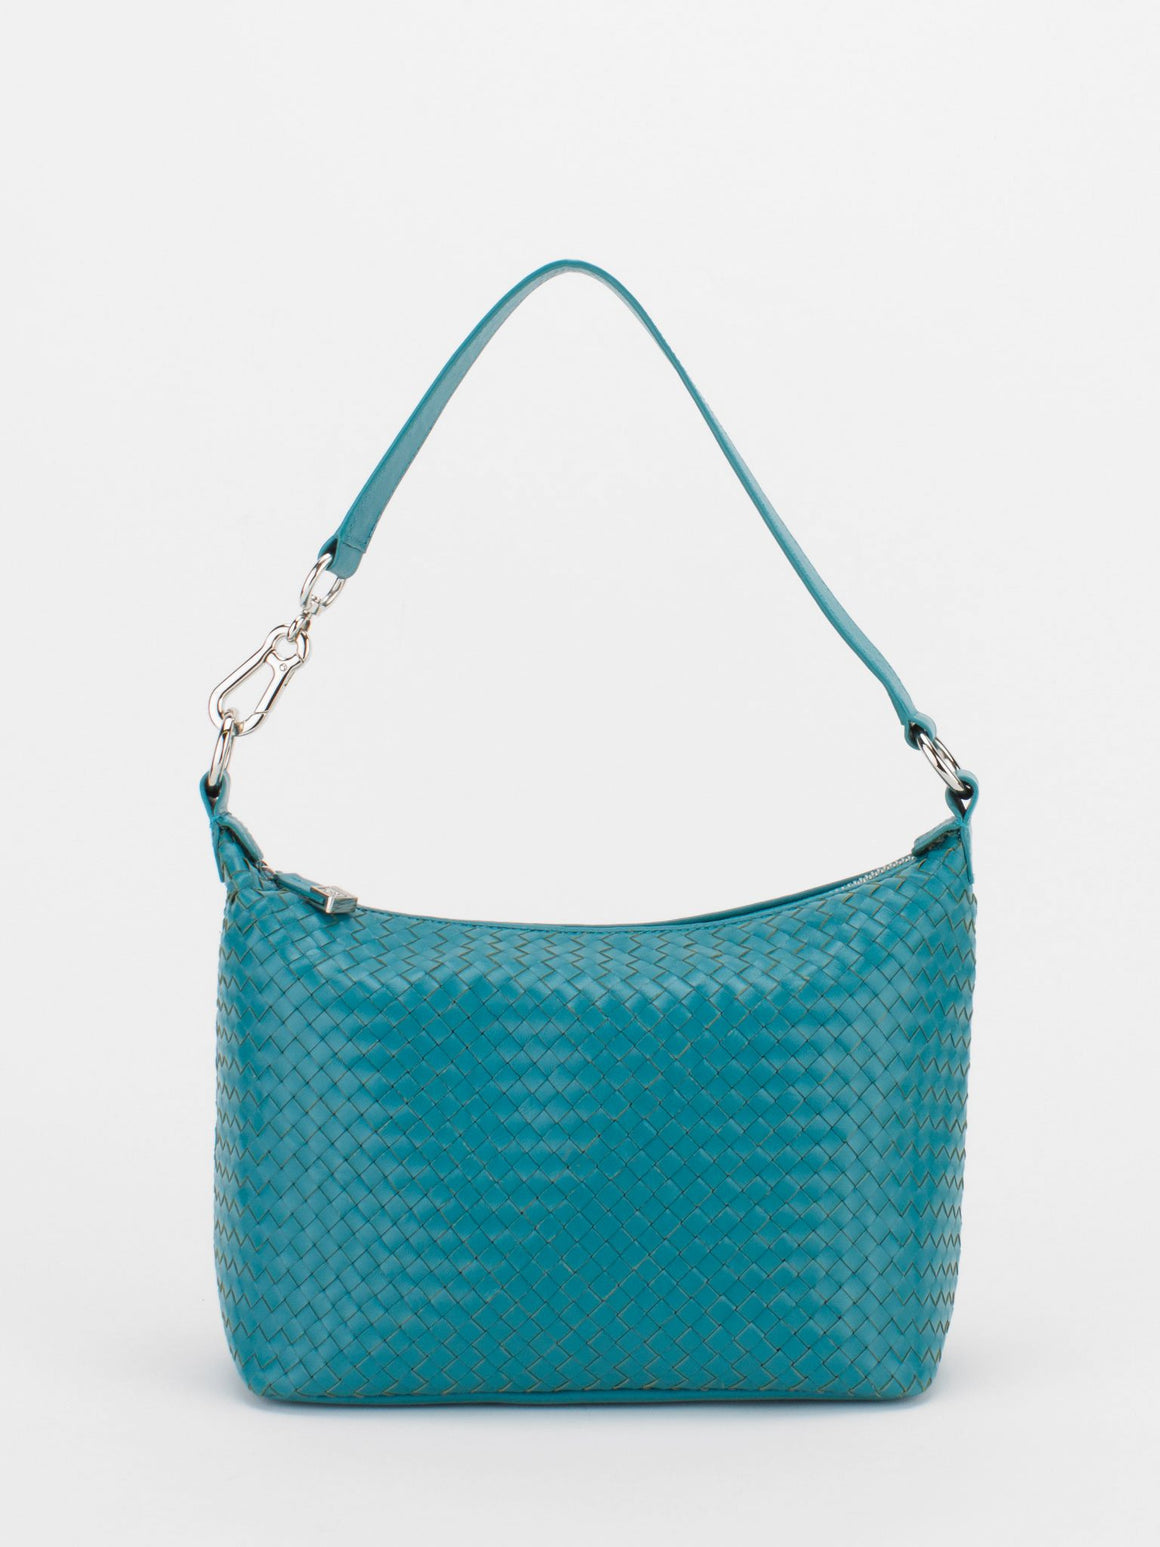 VENUS Woven Leather Hobo - Turquoise